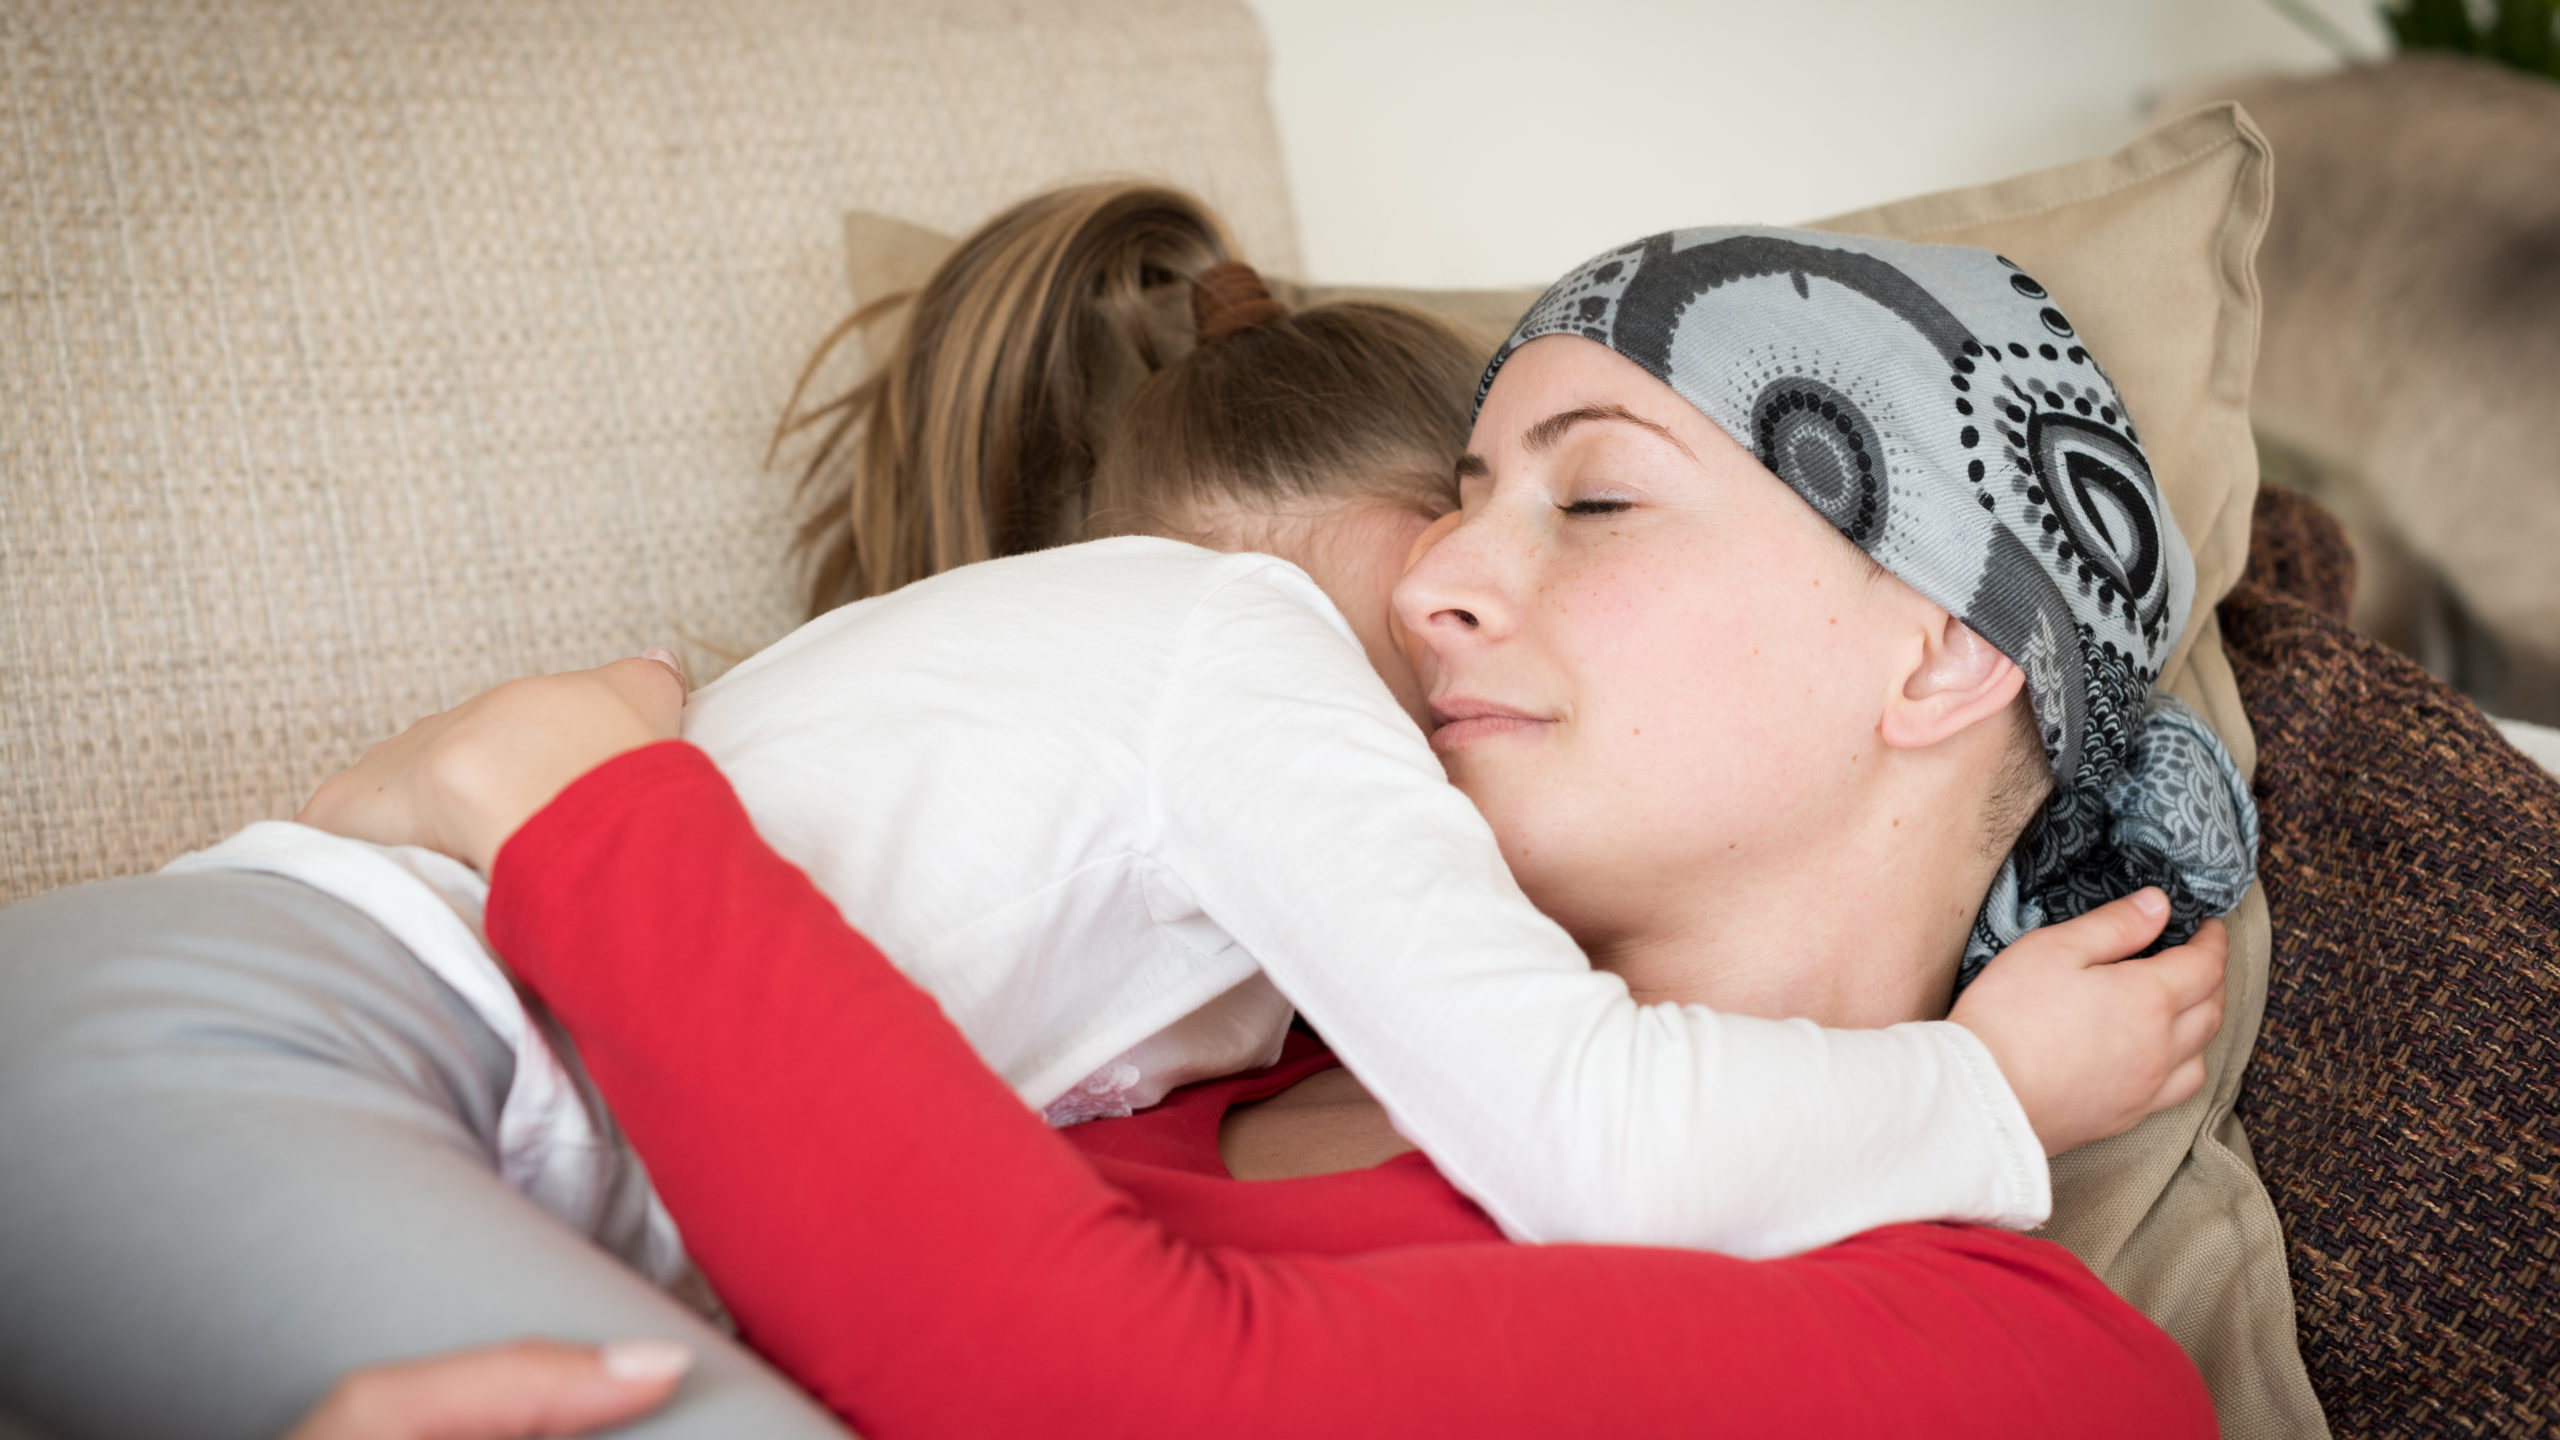 Young adult female cancer patient spending time with her daughter at home, relaxing on the couch.